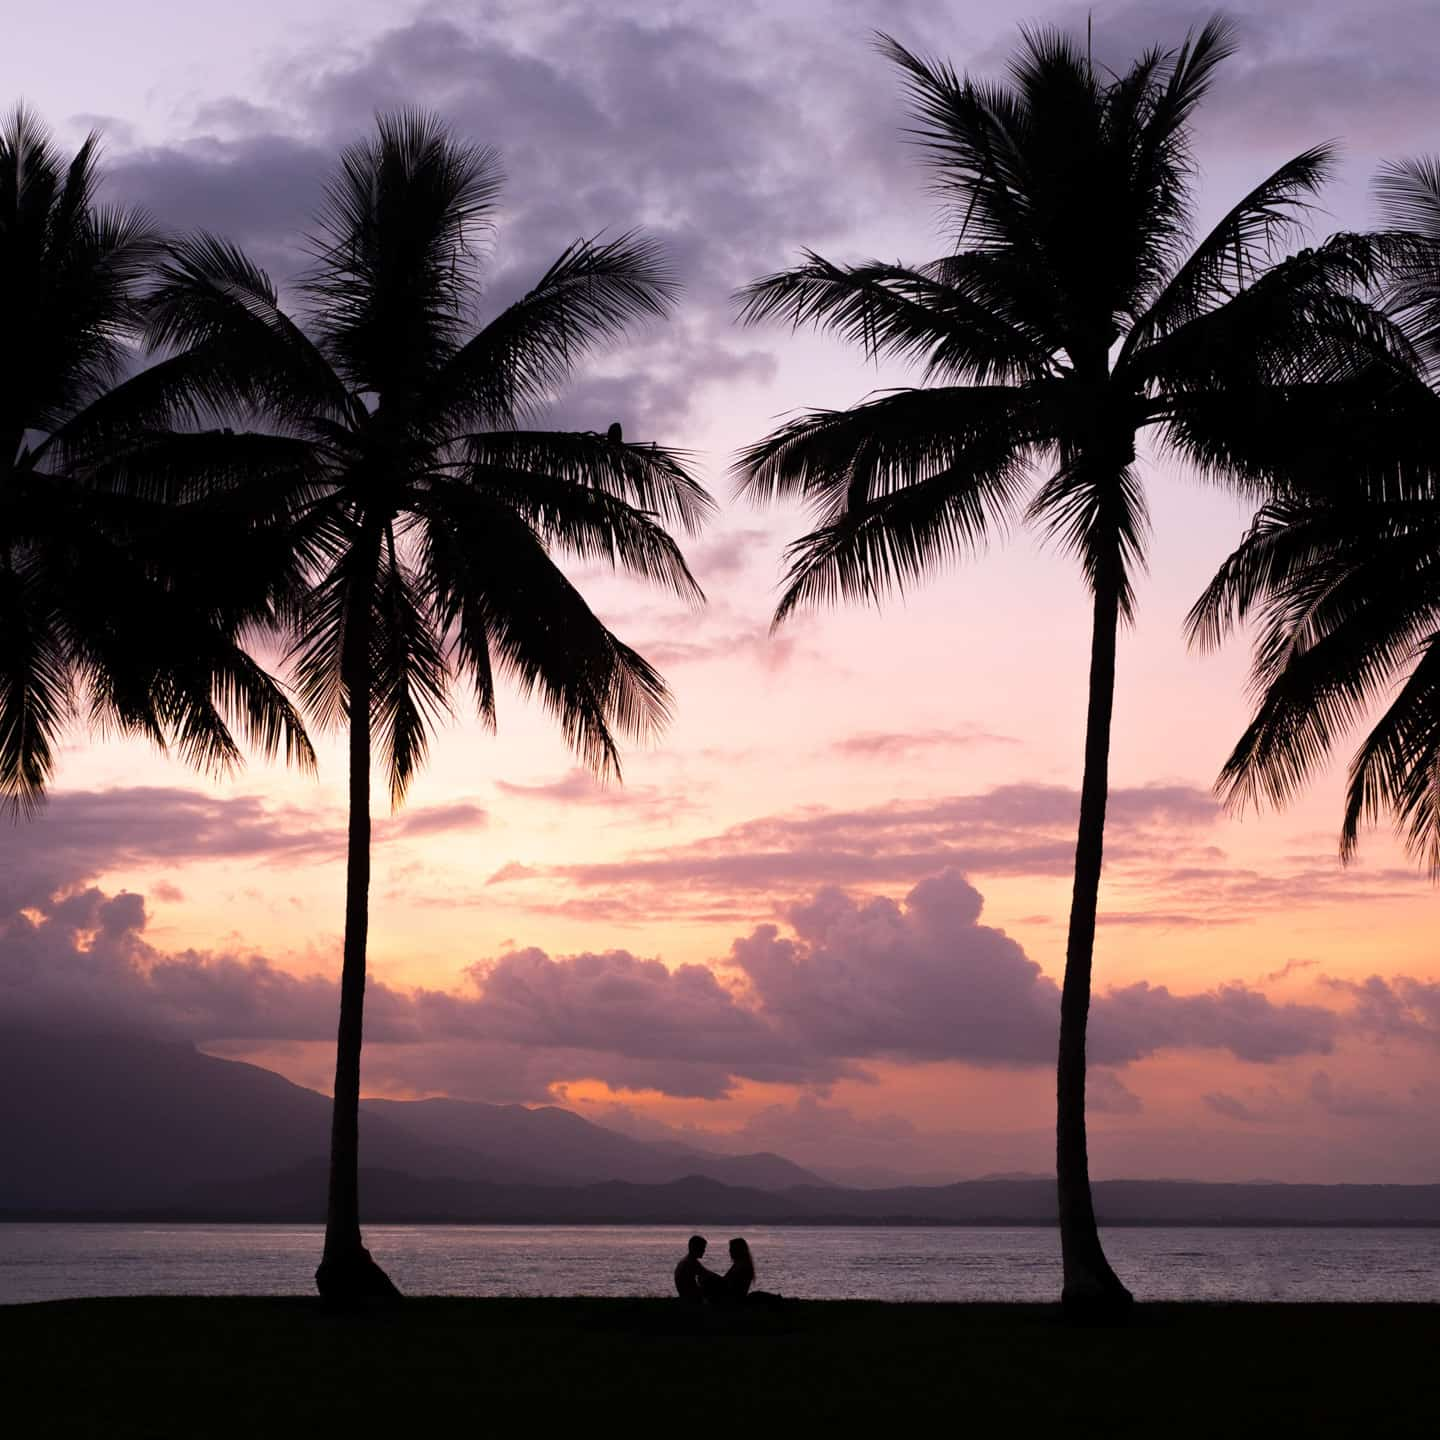 A couple framed by two palm trees at sunset in Rex Smeal Park, Port Douglas, Cairns